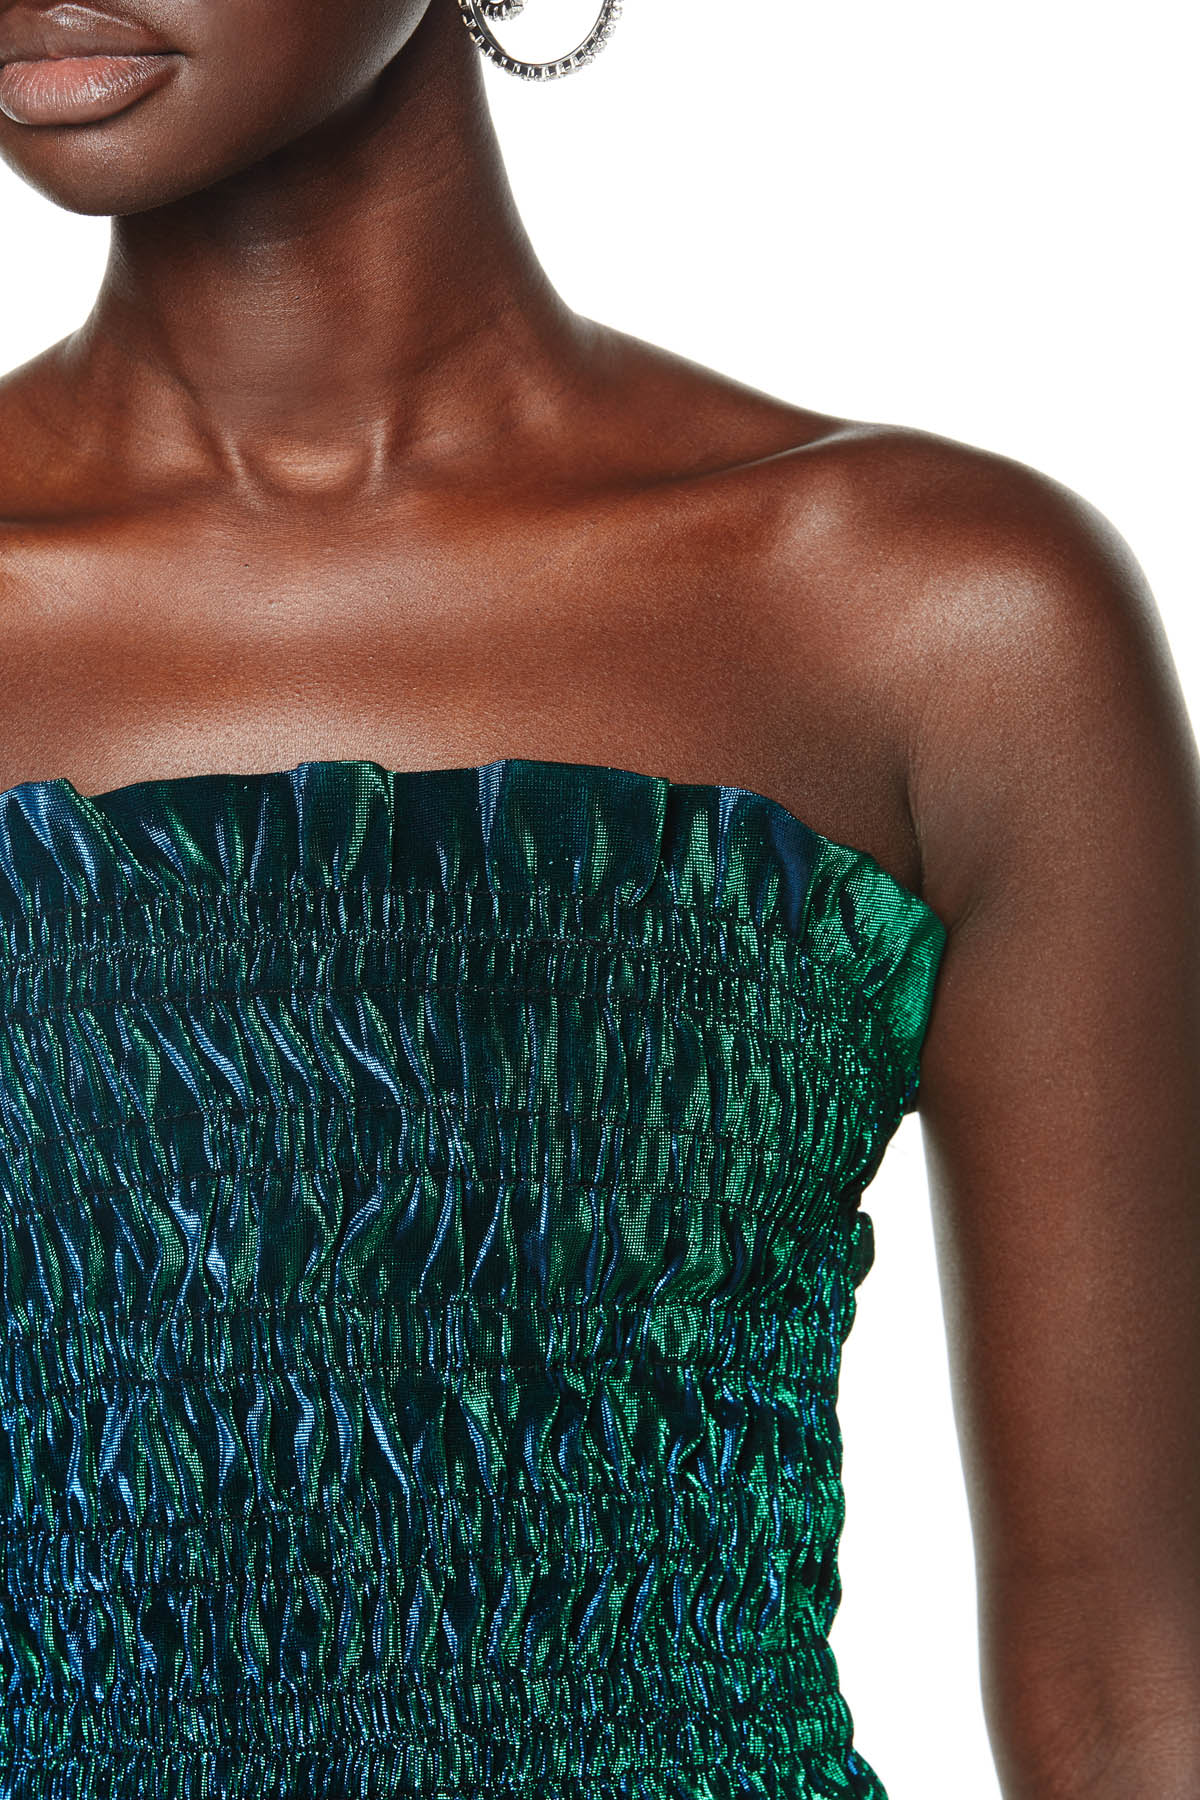 Tube top with ruched detailing. Available in Peacock Green.